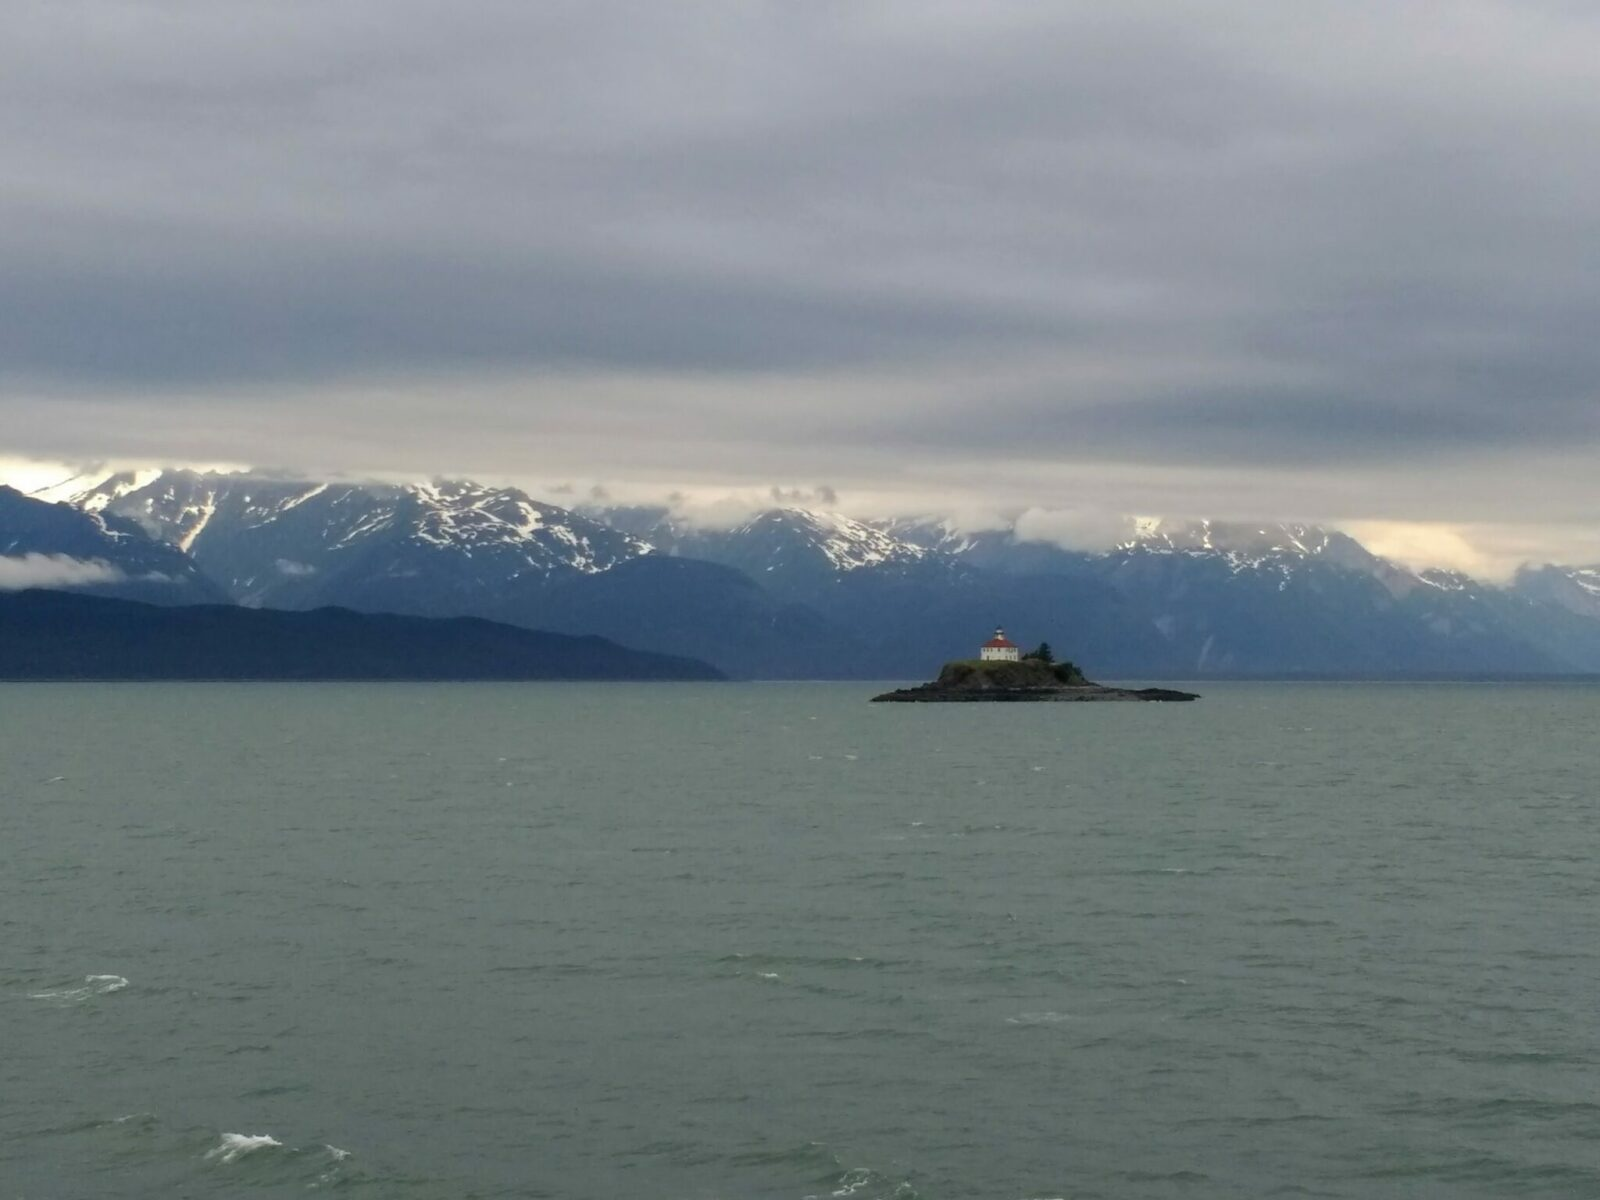 A lighthouse in a white building with a red roof on a small rocky island in the Lynn Canal in Alaska. Around the island is water and forested hills and snow capped mountains on a cloudy day